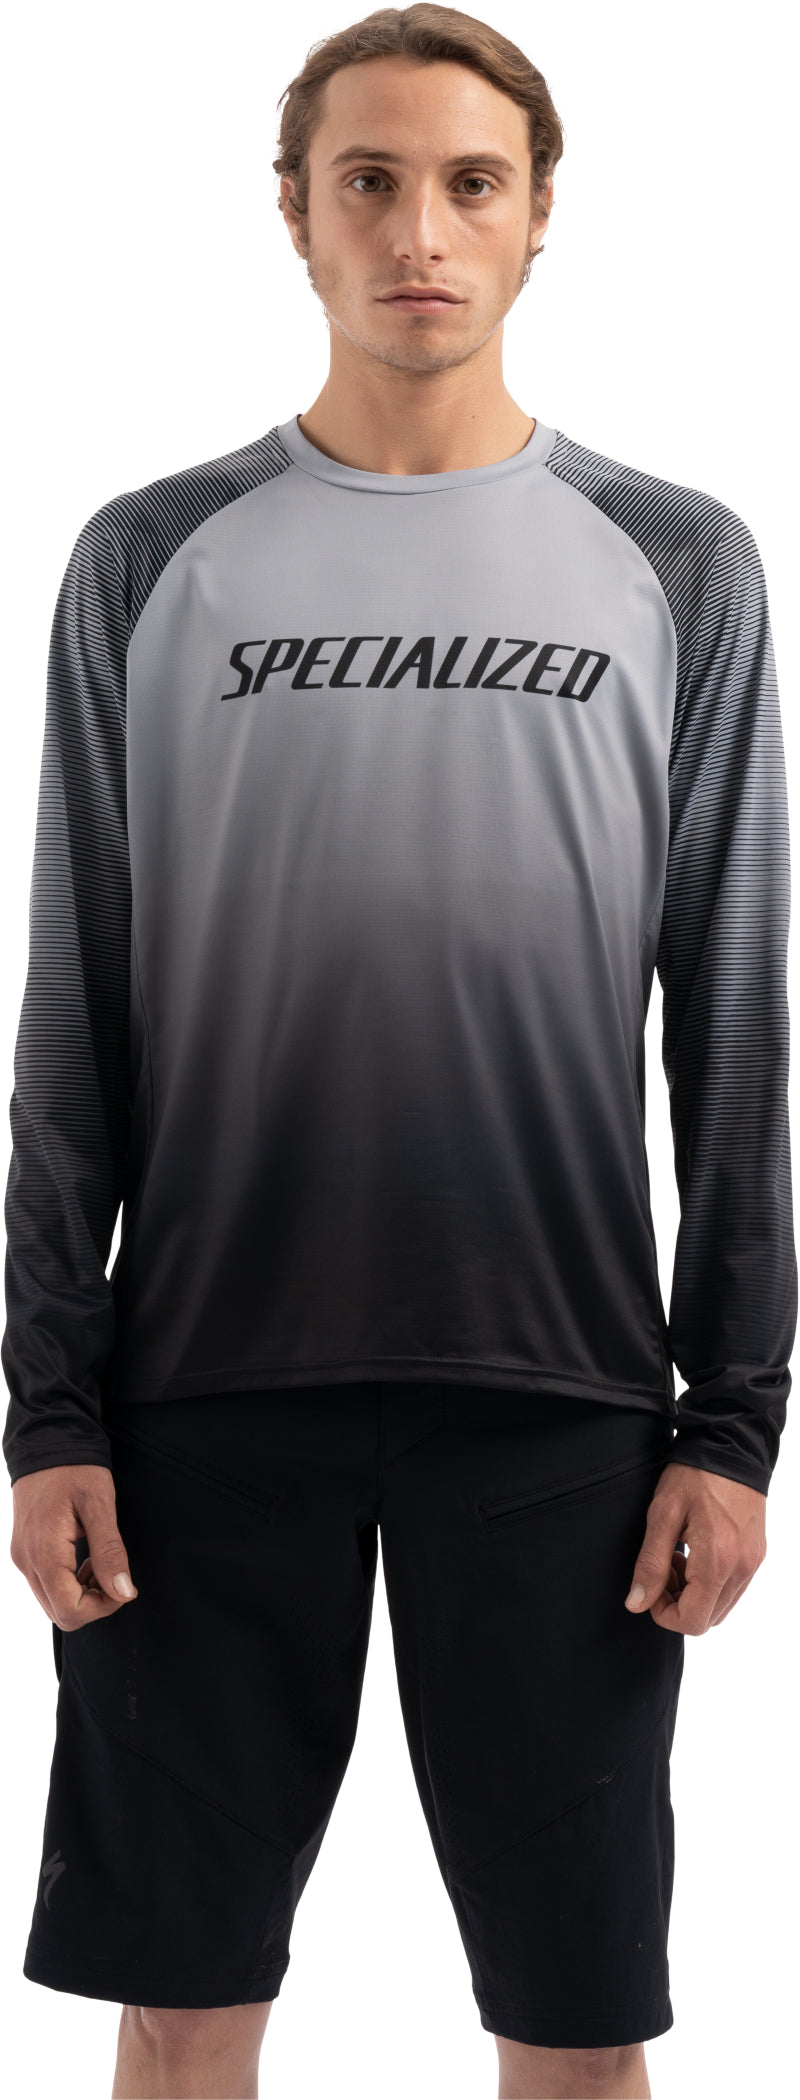 Enduro Air Long Sleeve Jersey